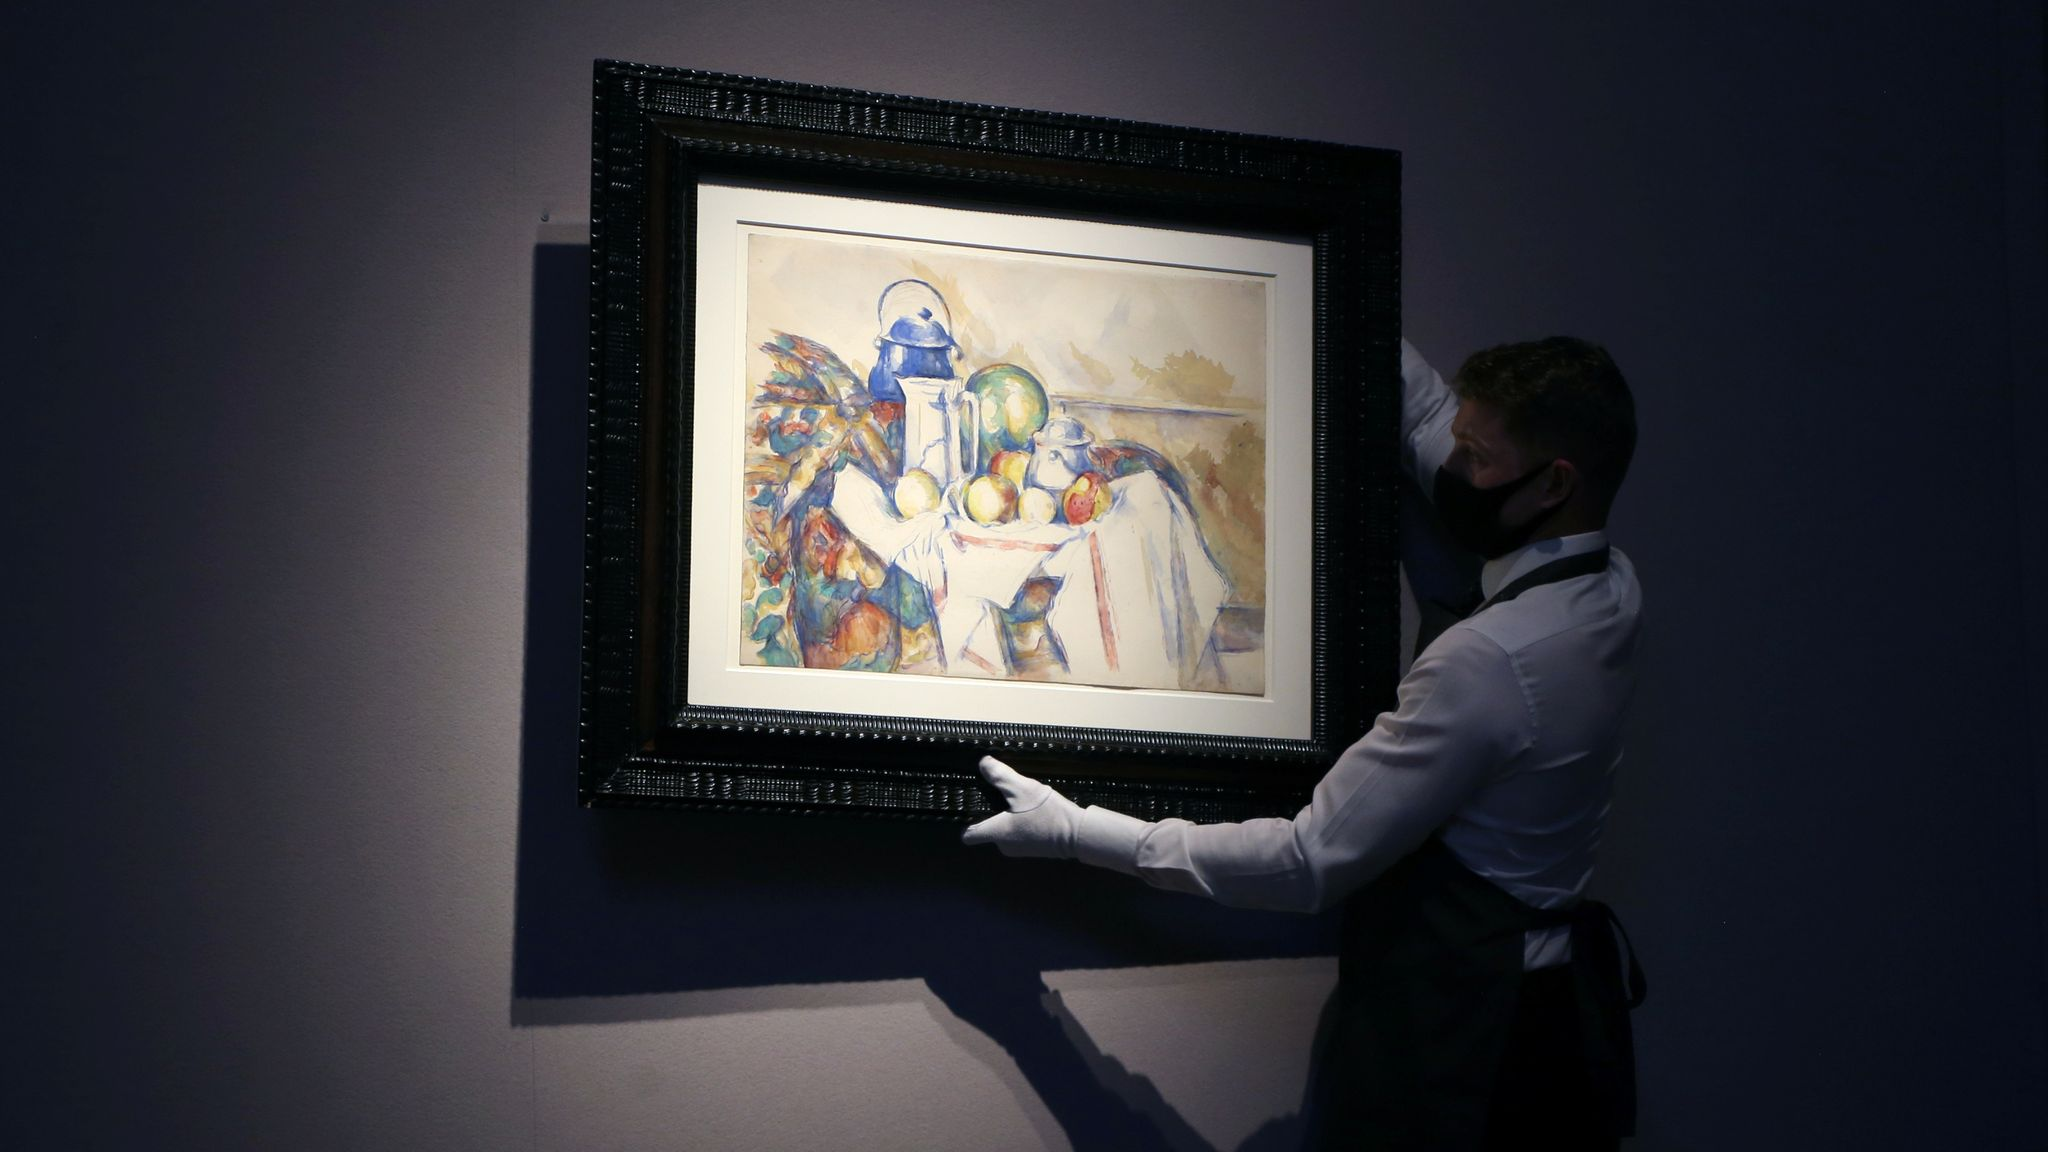 An employee holds a work by Paul Cezanne at Christie's auction house in London, Britain September 9, 2020. REUTERS/Tom Jacobs